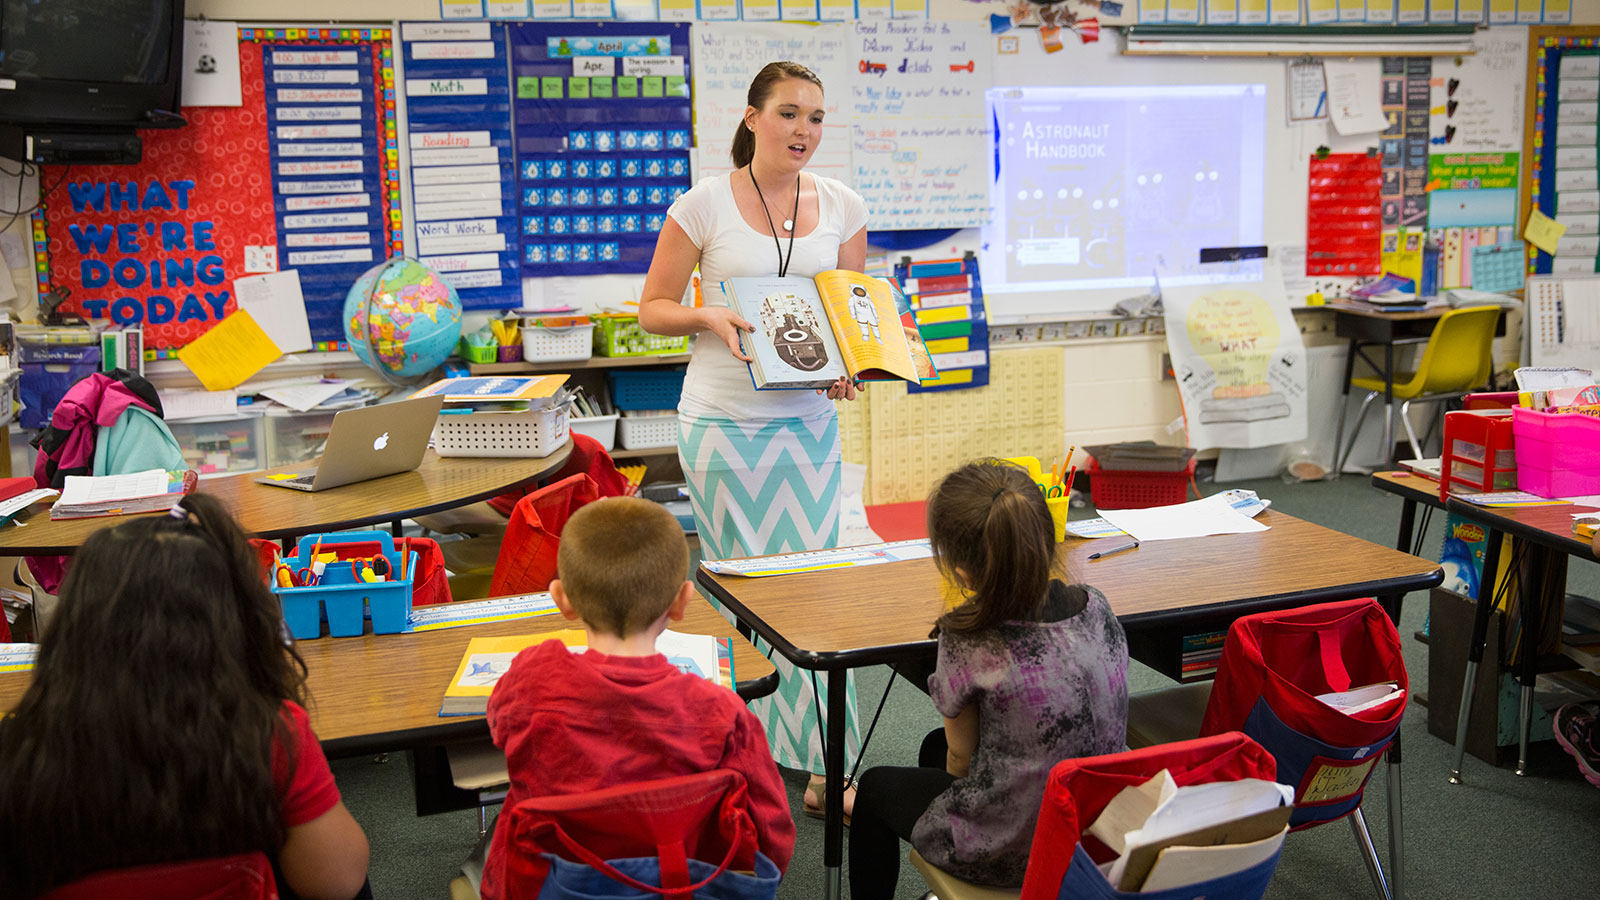 Discover the Classroom: A Passion for Teaching